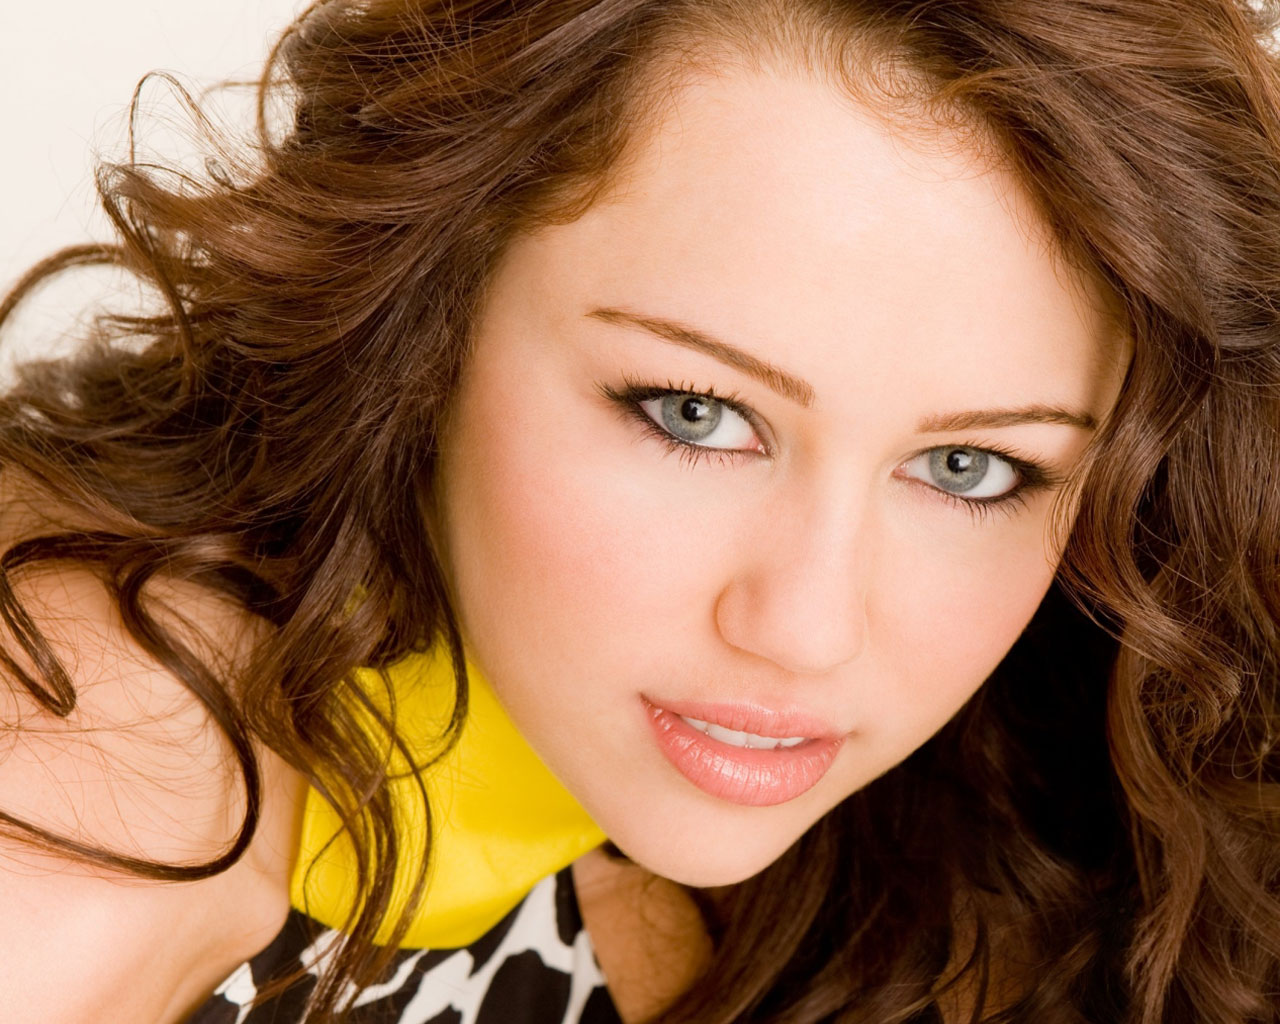 Miley Cyrus: Miley Cyrus Daughter Of Billy Ray Cyrus